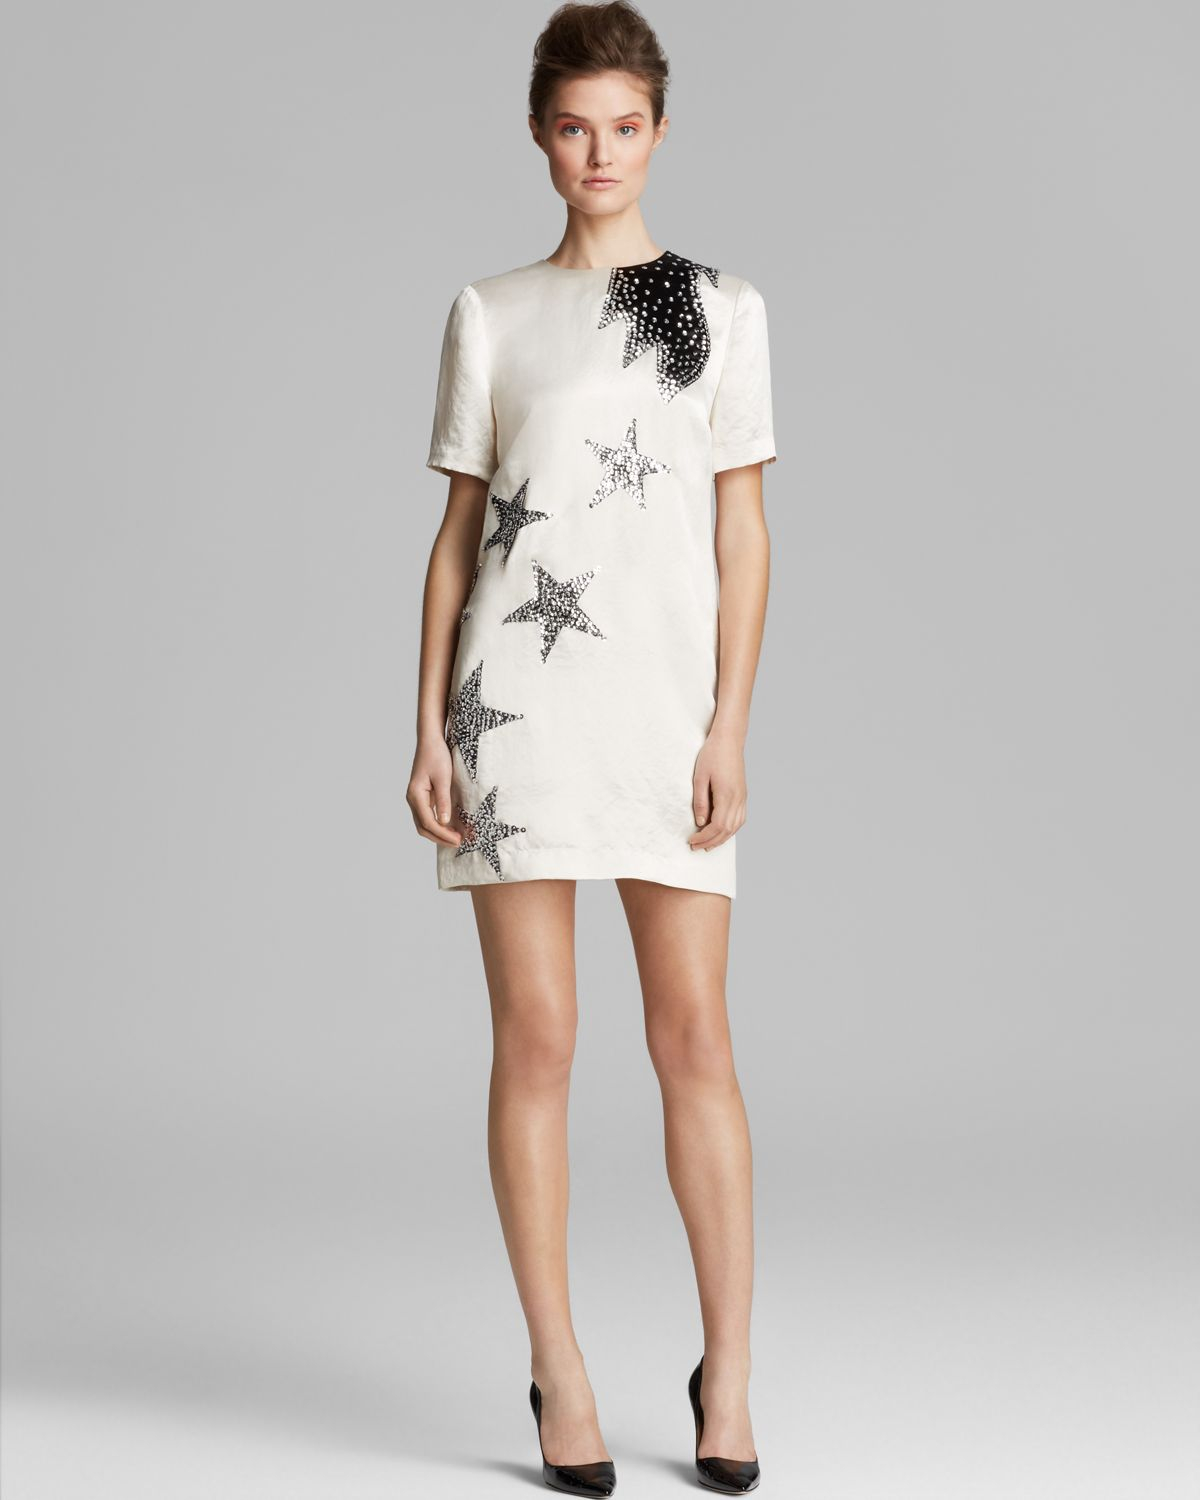 Lyst - Marc By Marc Jacobs Dress Cosmo Night Satin in White